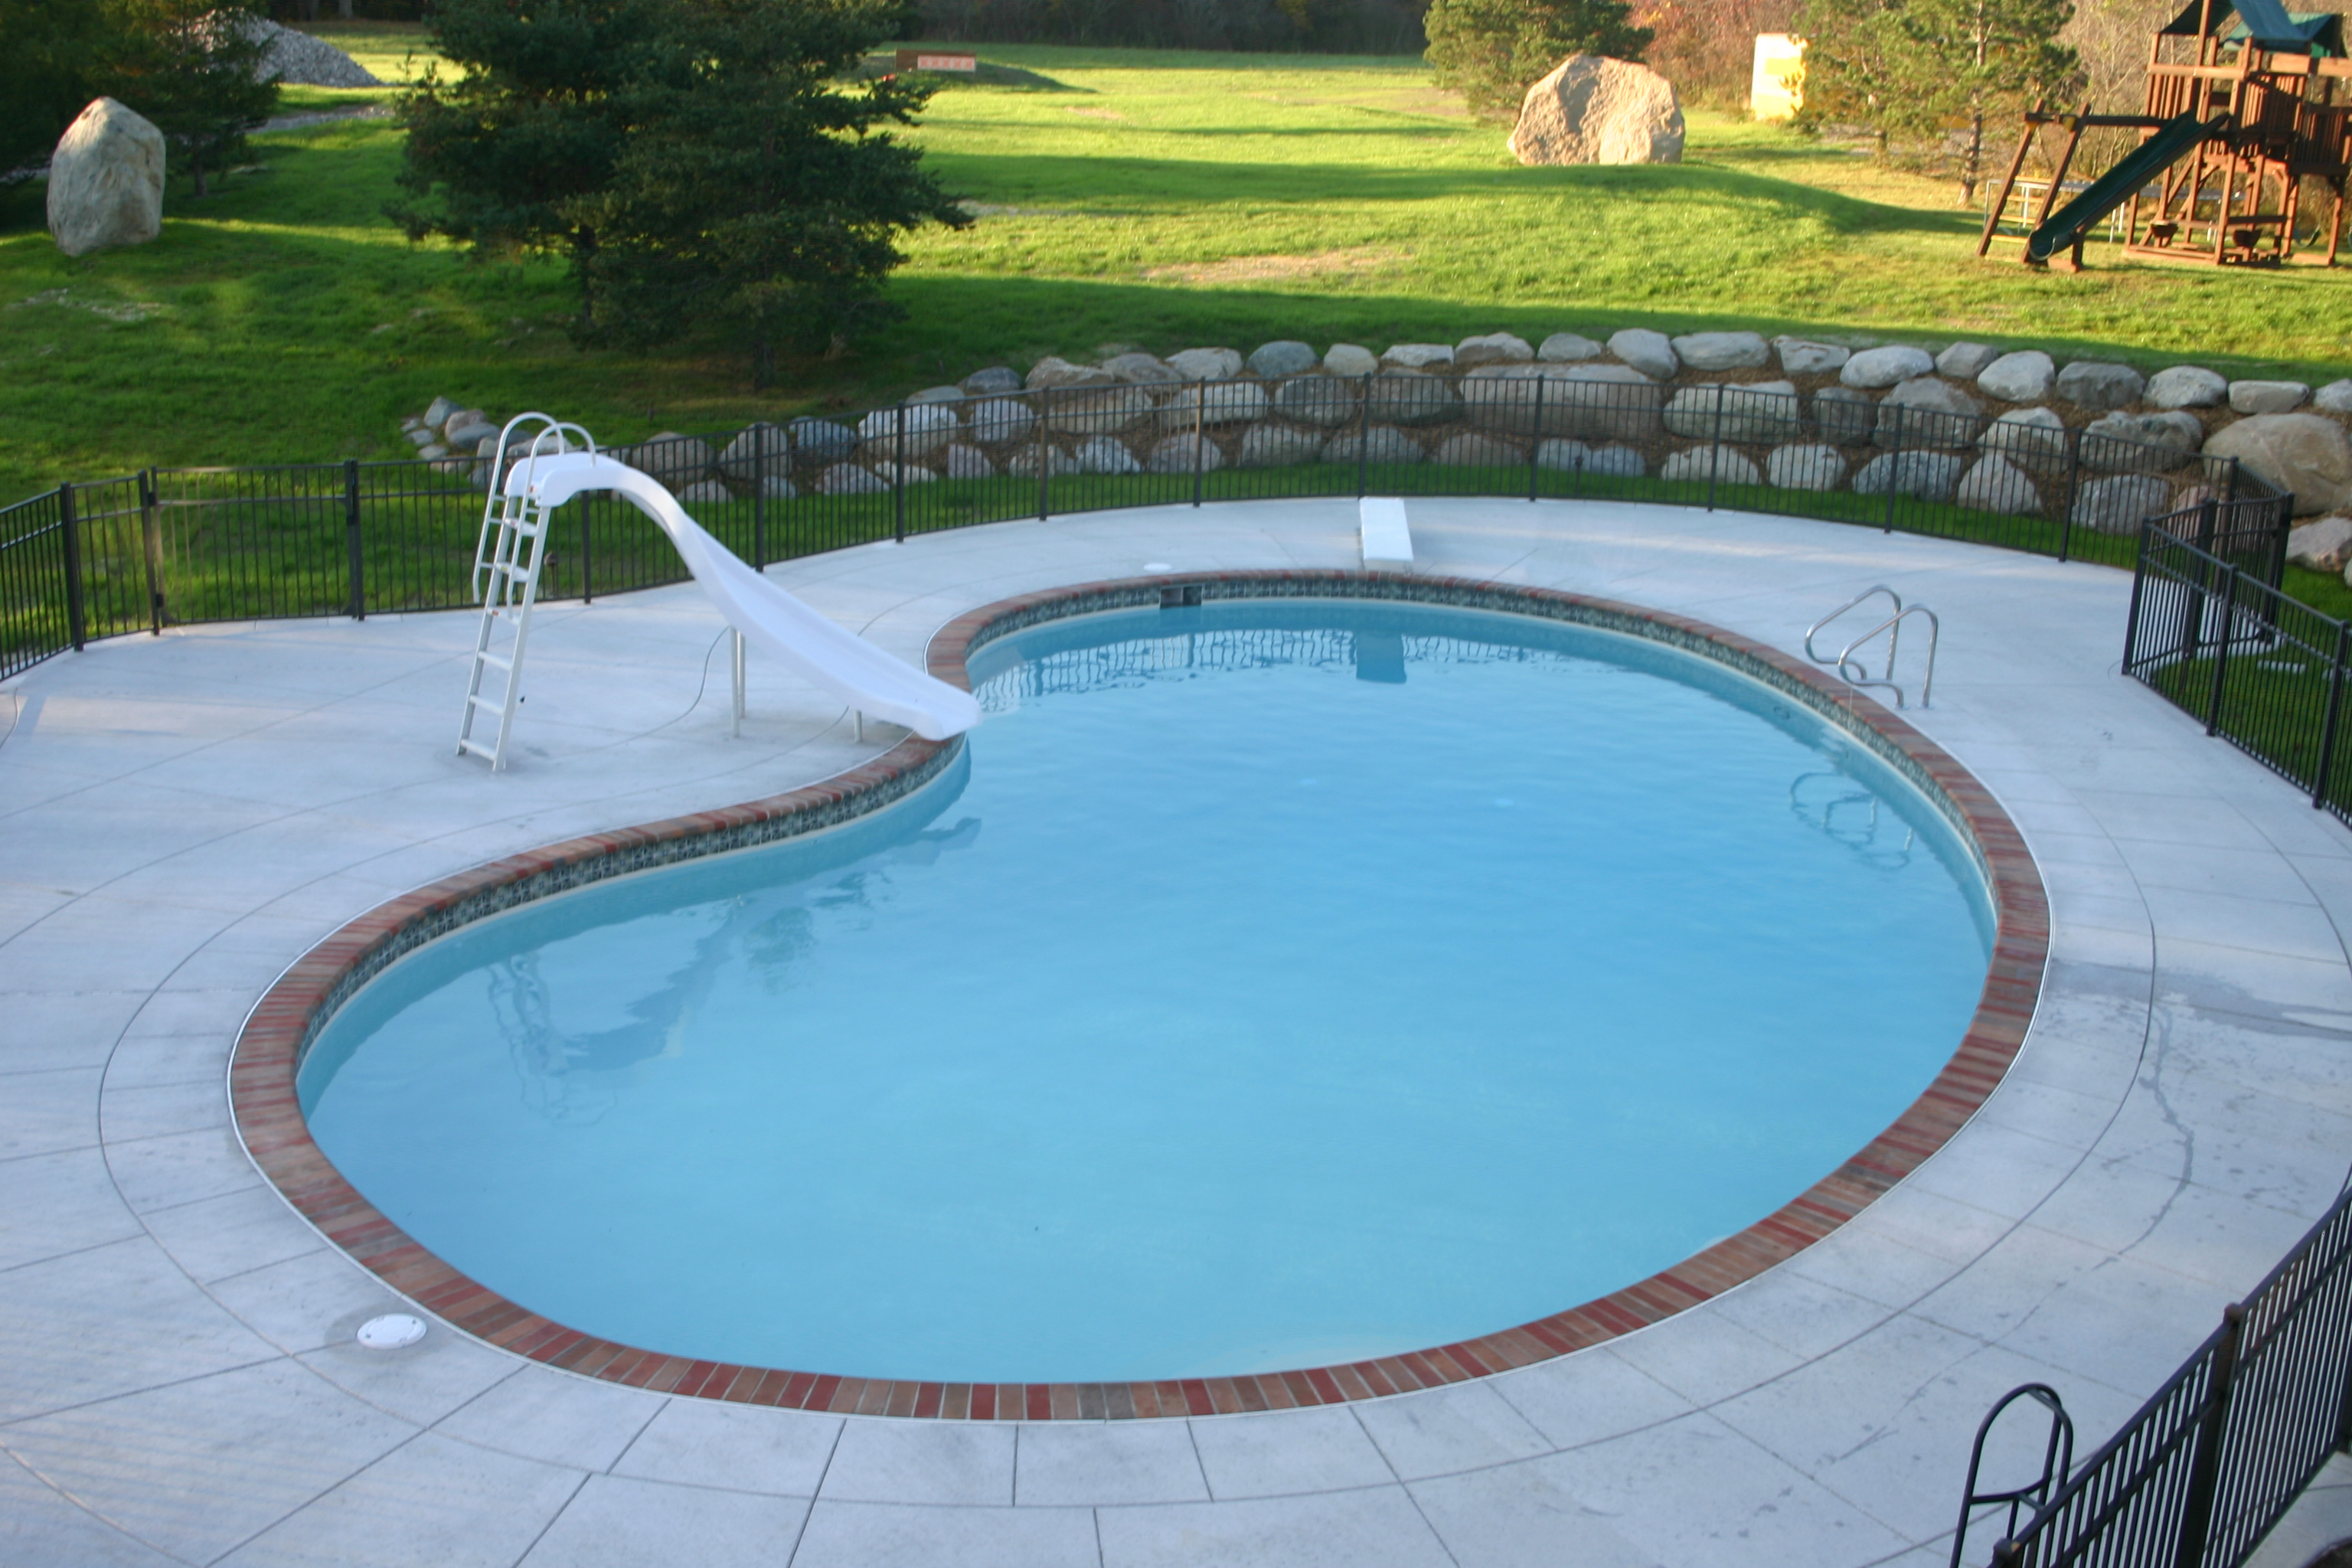 Pool maintenance oxford mi american pool service img1593 solutioingenieria Image collections